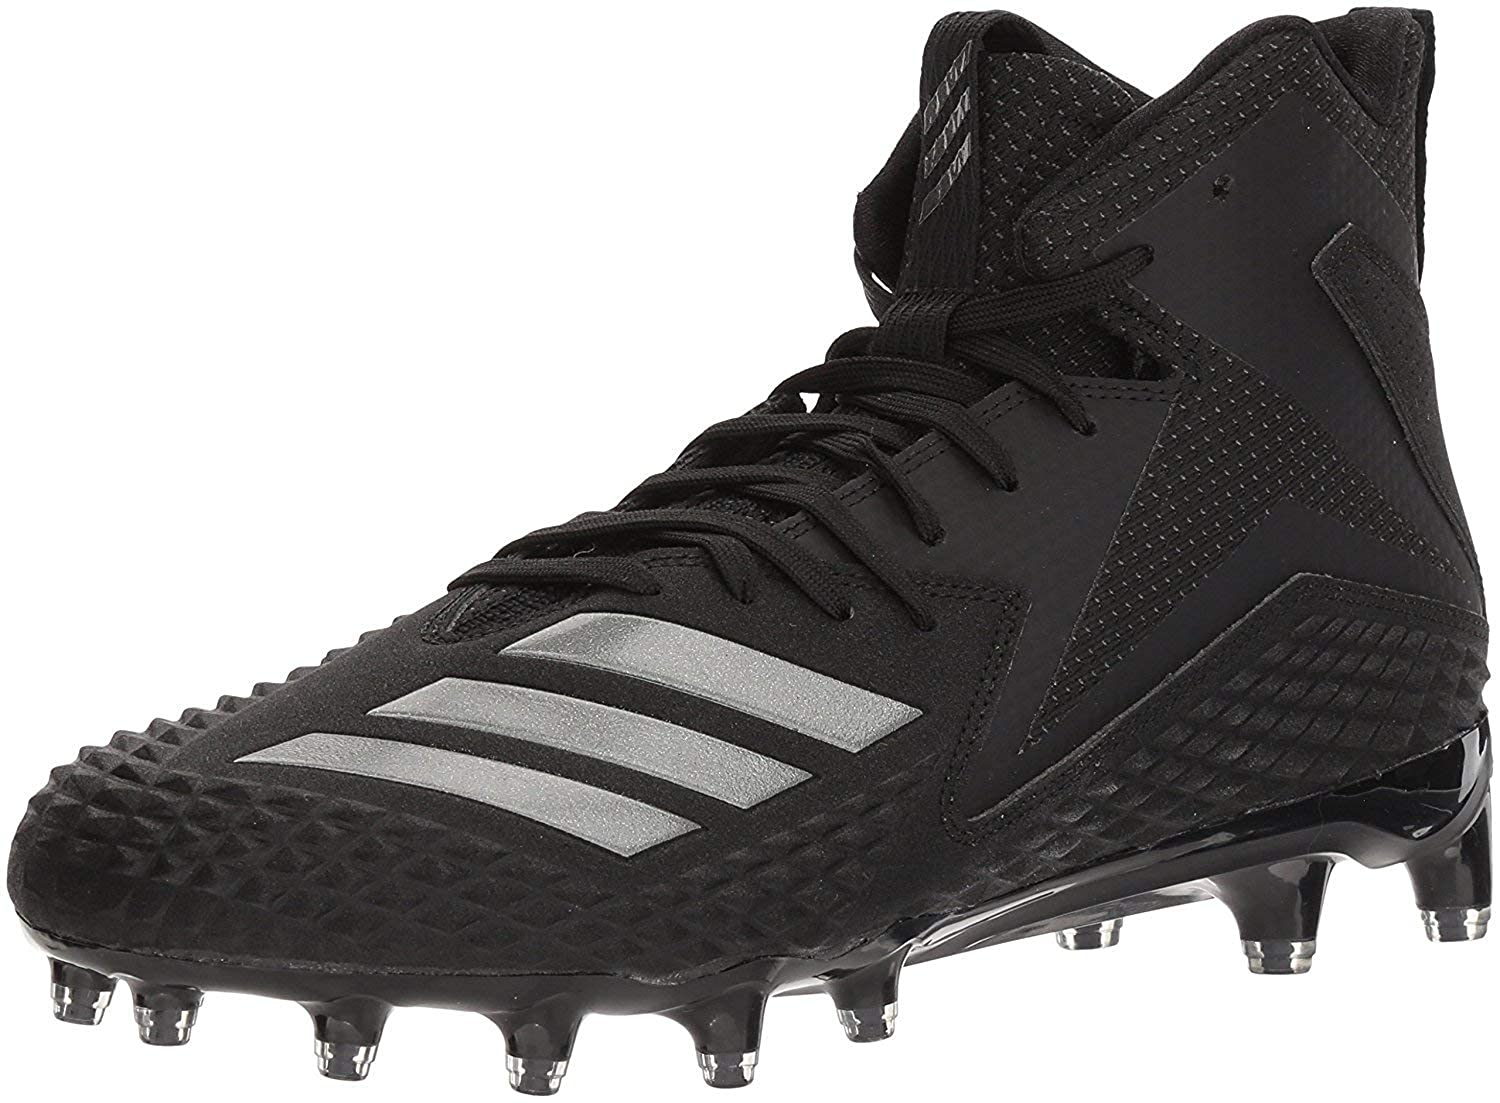 adidas wide football cleats buy clothes